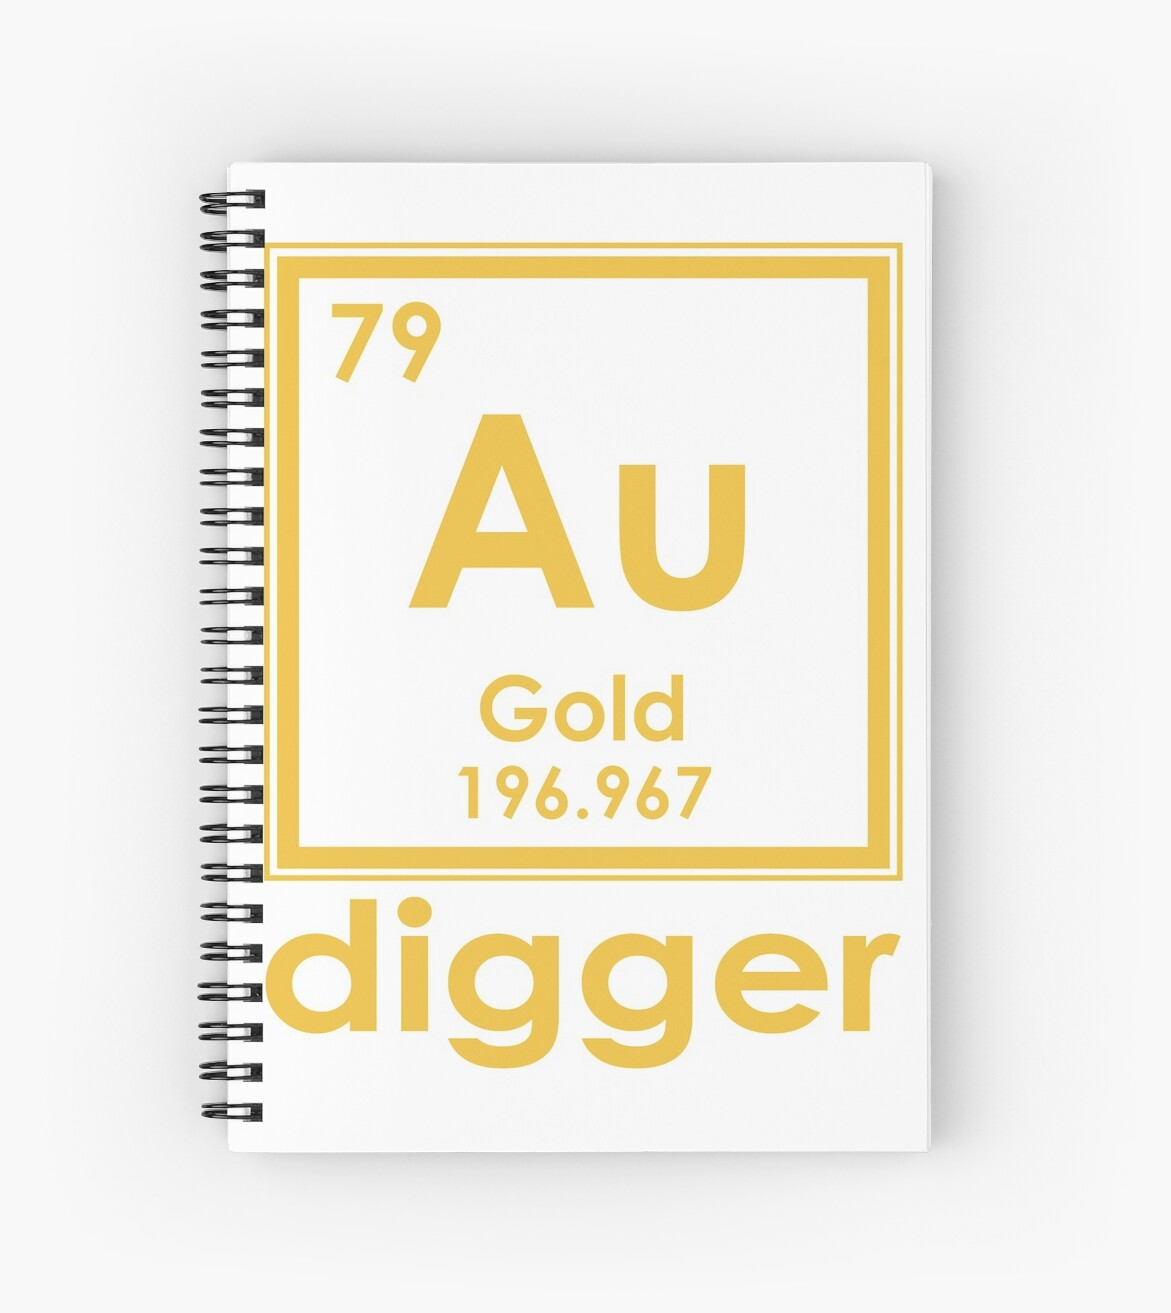 Gold digger au 196967 periodic table of elements design spiral gold digger au 196967 periodic table of elements design by nvalleydesign urtaz Images